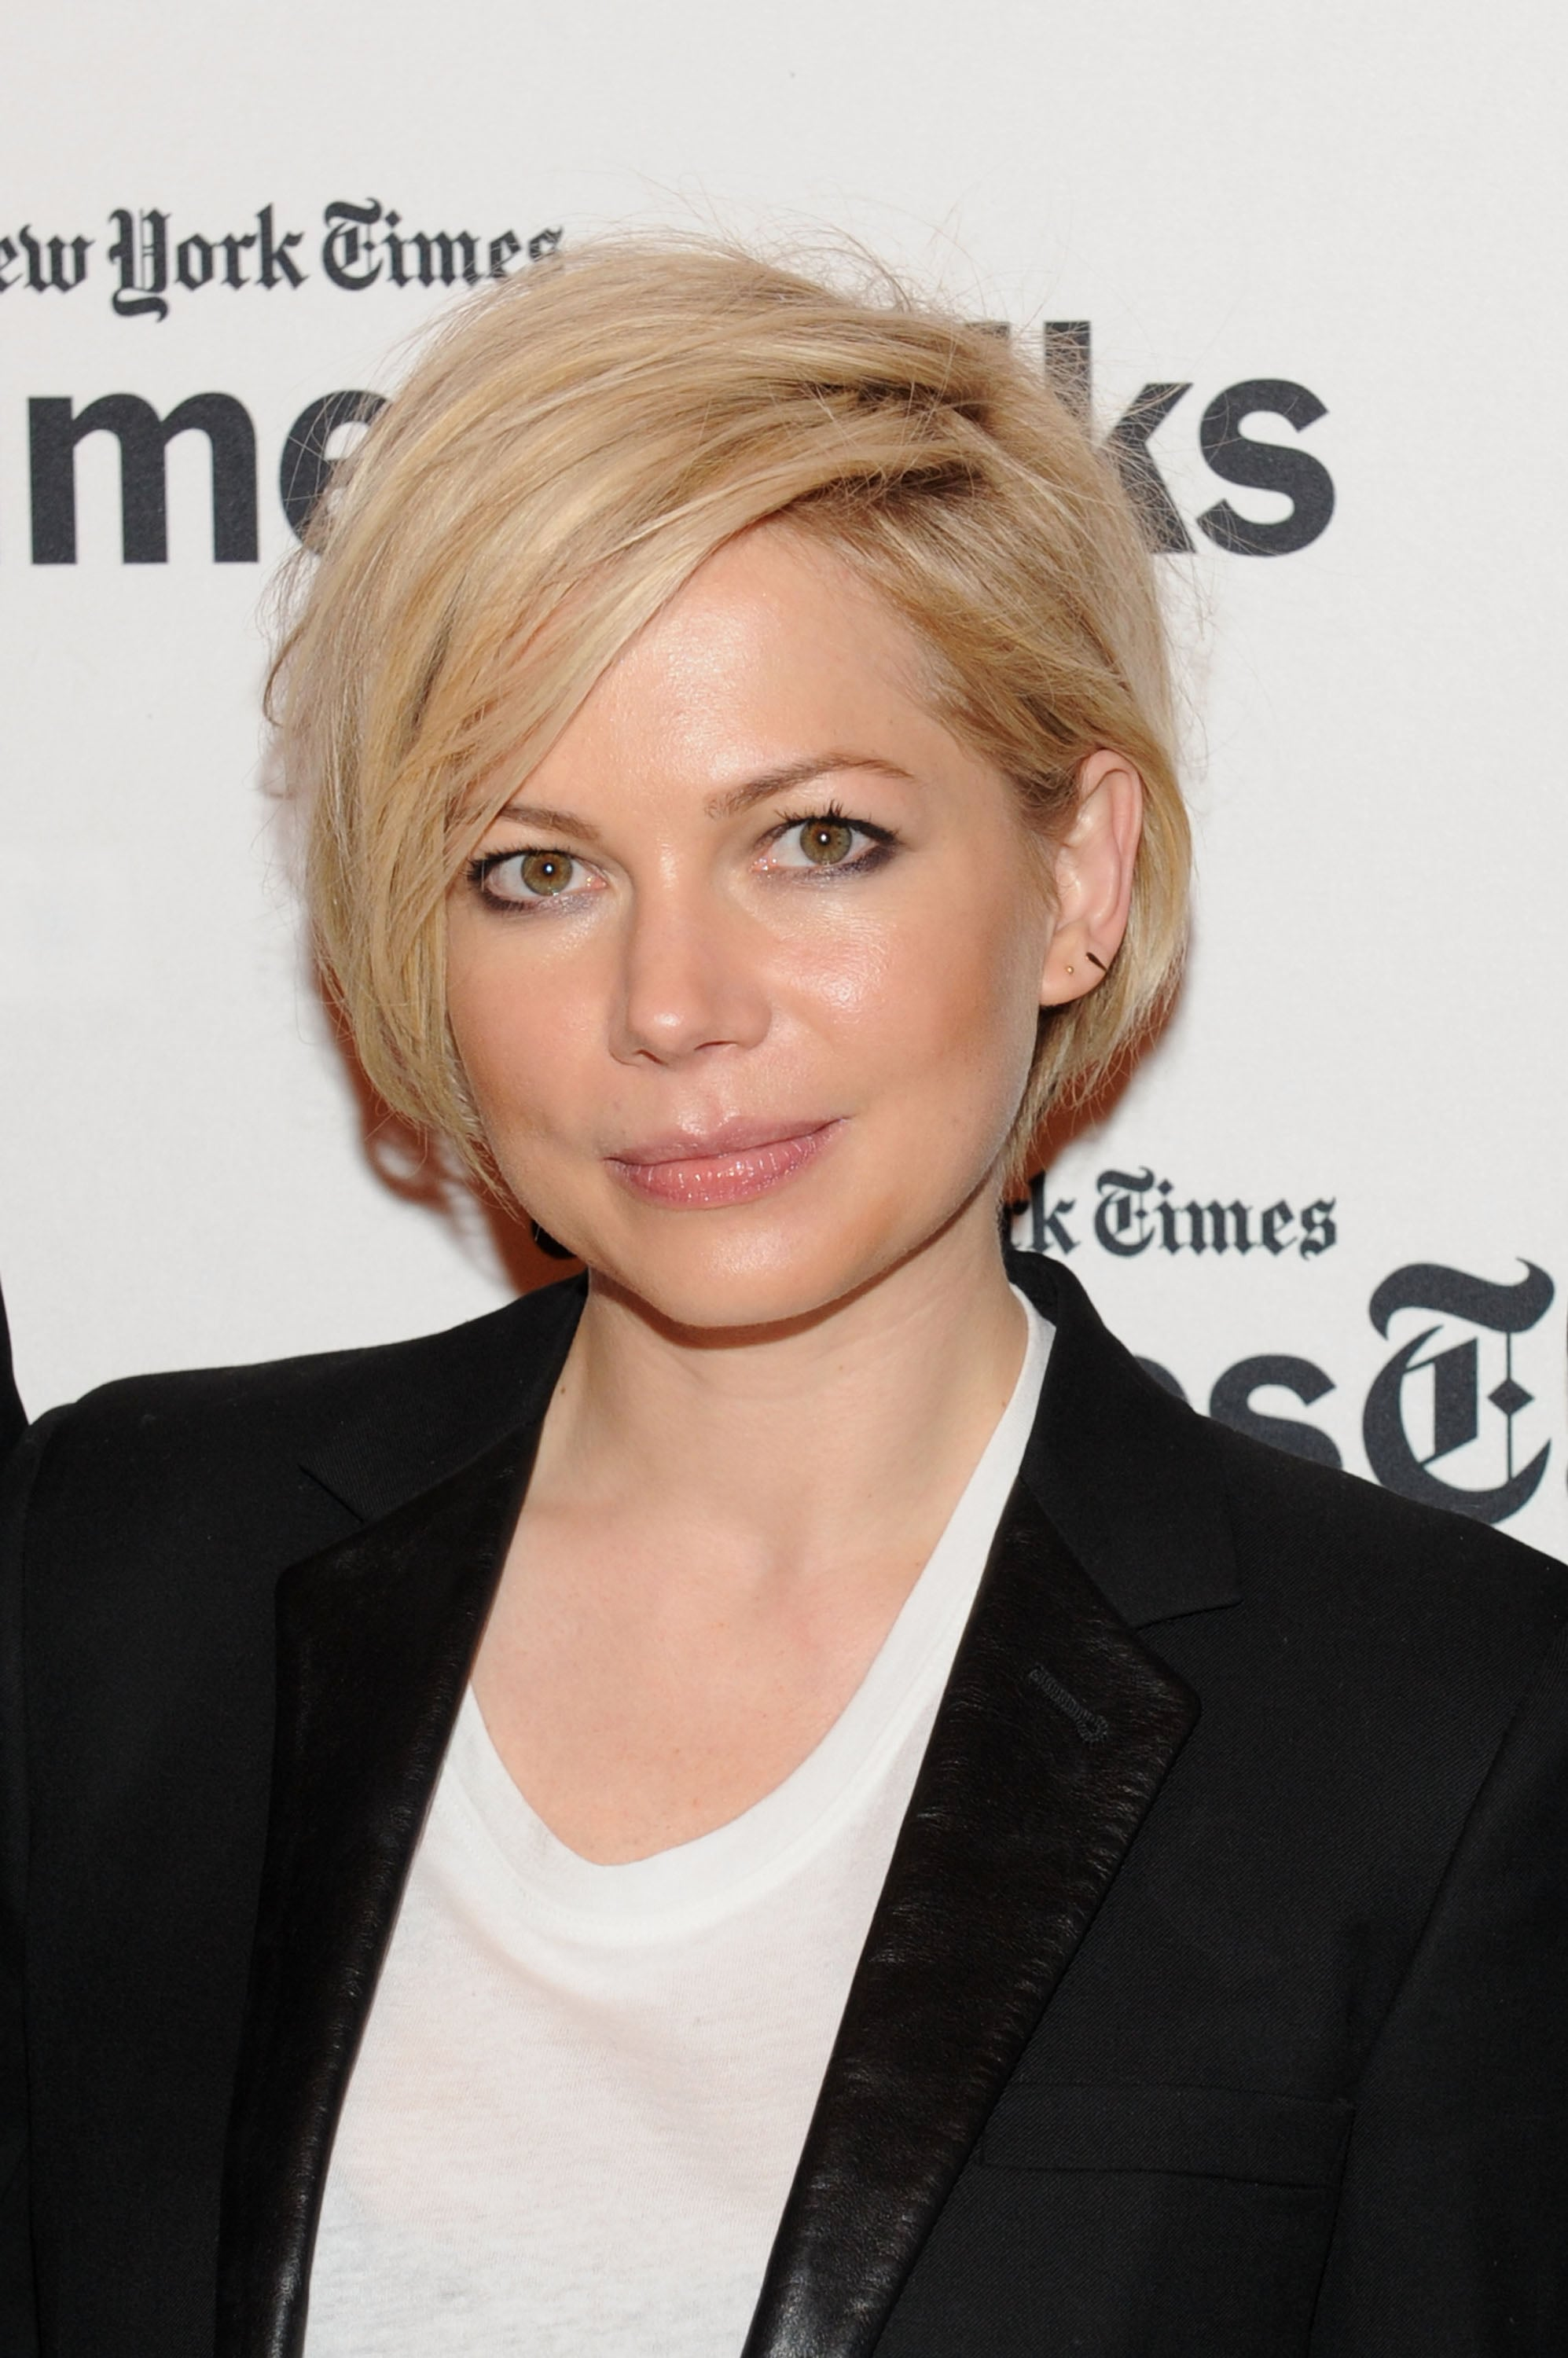 Michelle Williams Grown-Out Hair February 2014 | POPSUGAR ... Michelle Williams